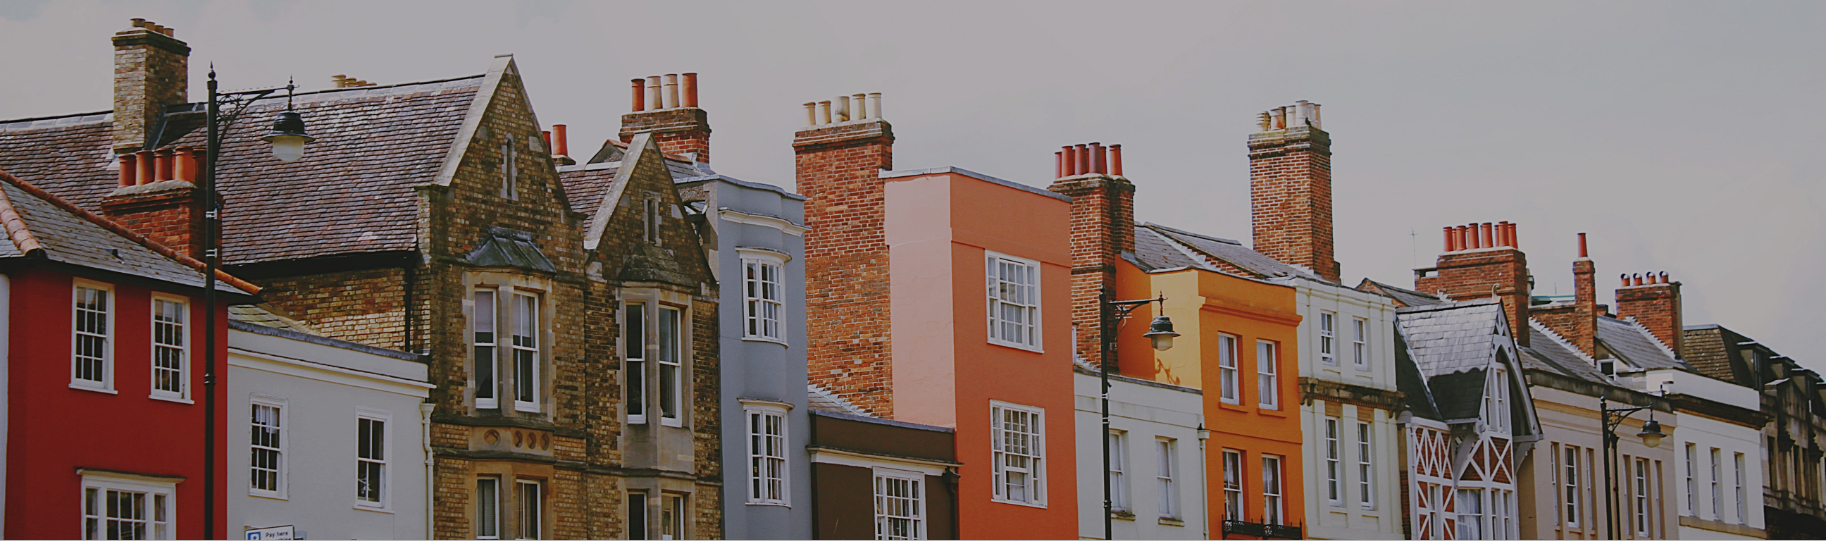 SimplyLondon-houses